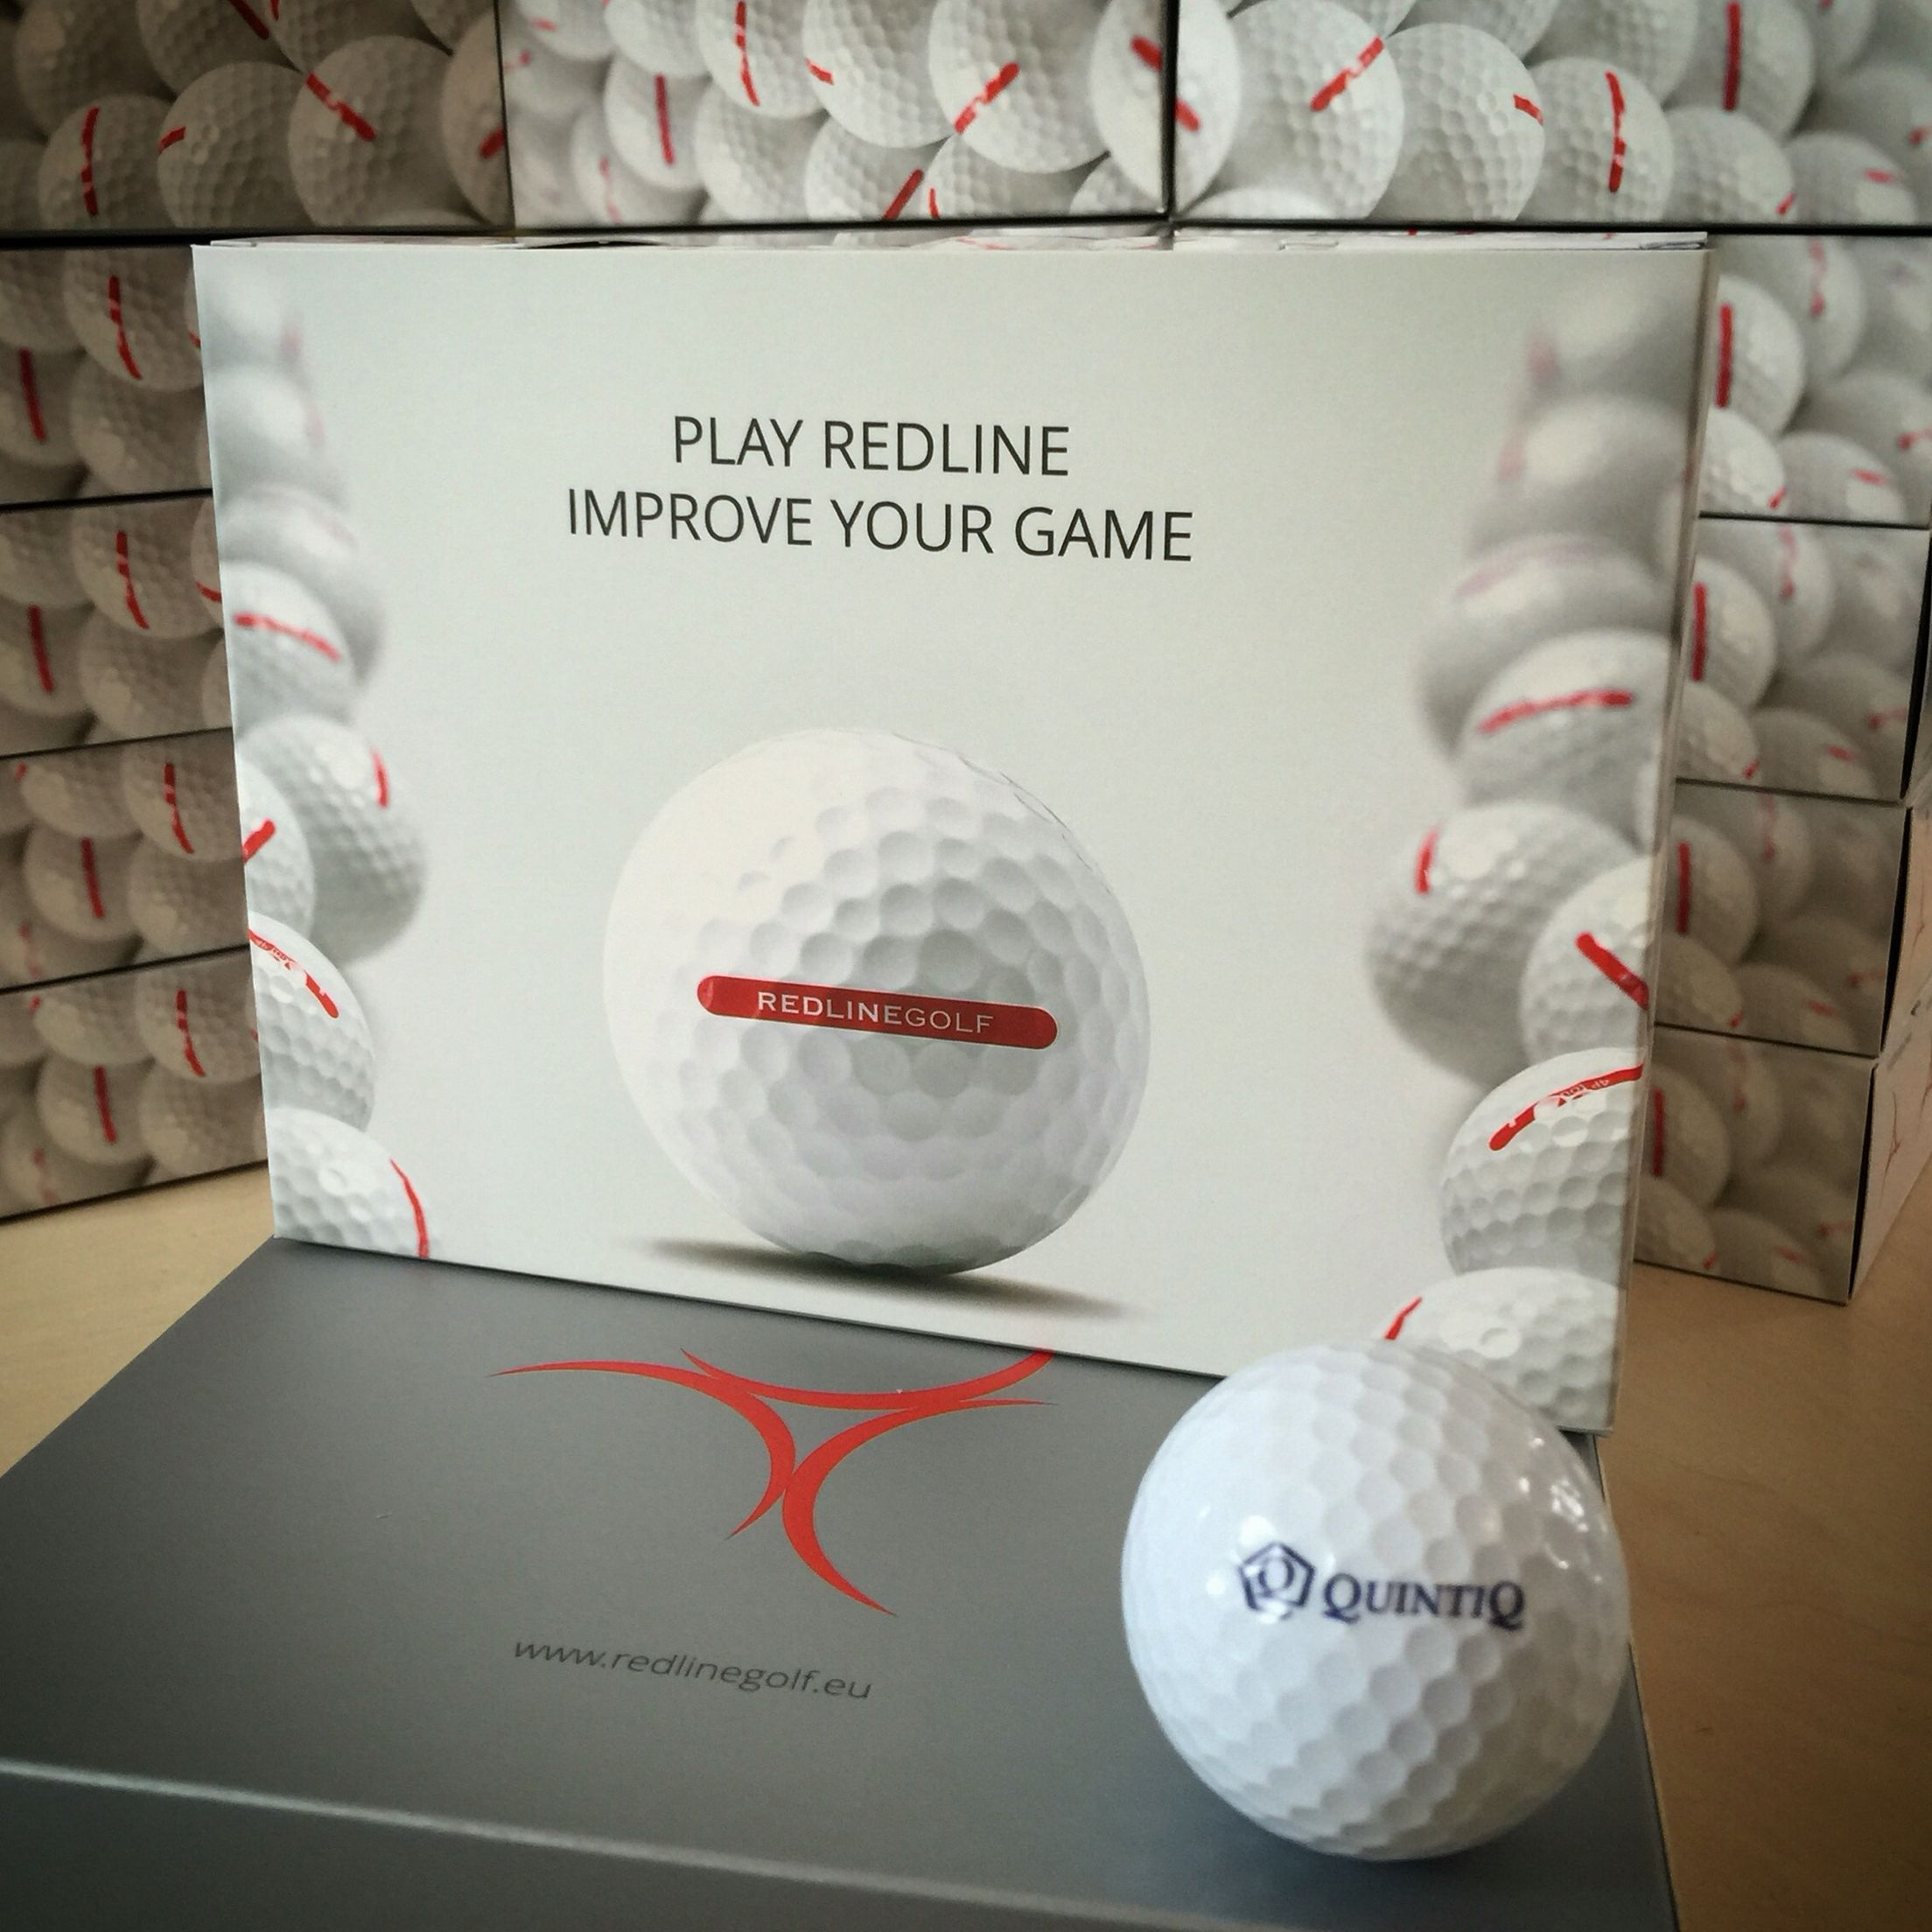 Our new sleeve boxes are in use! Looking awesome! #golfballs #customgolfballs